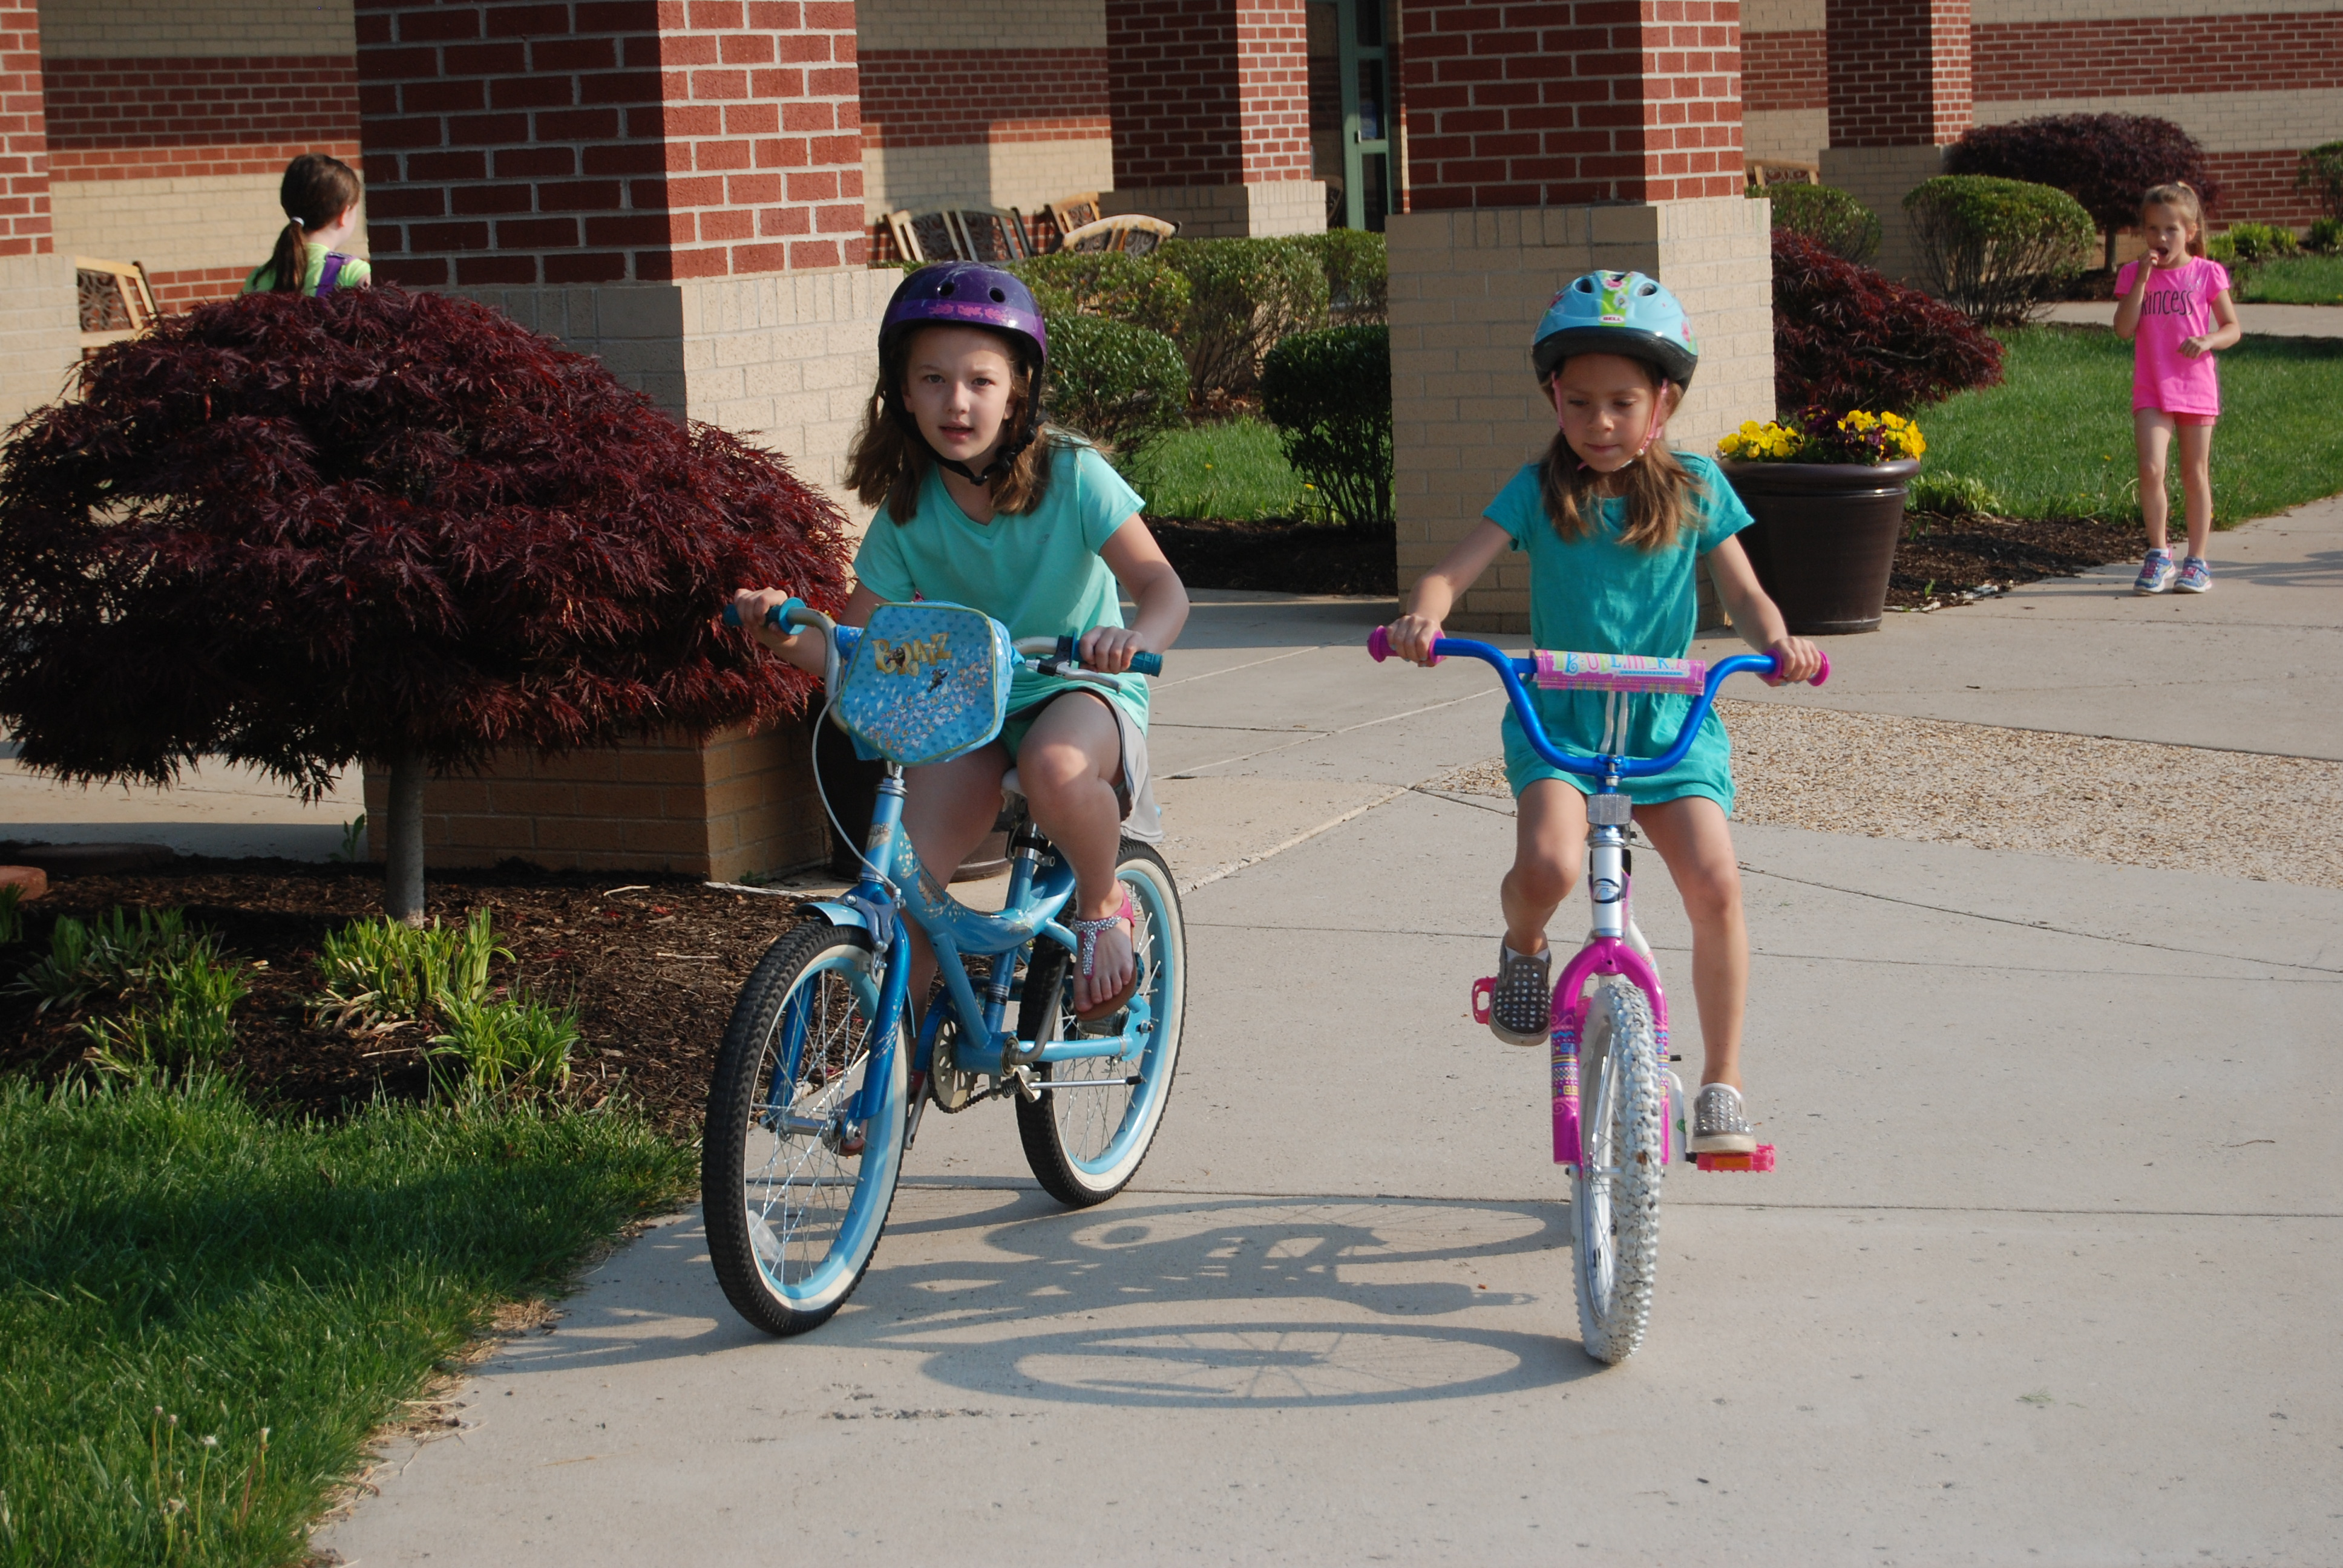 Two young girls riding bicycles on a school sidewalk